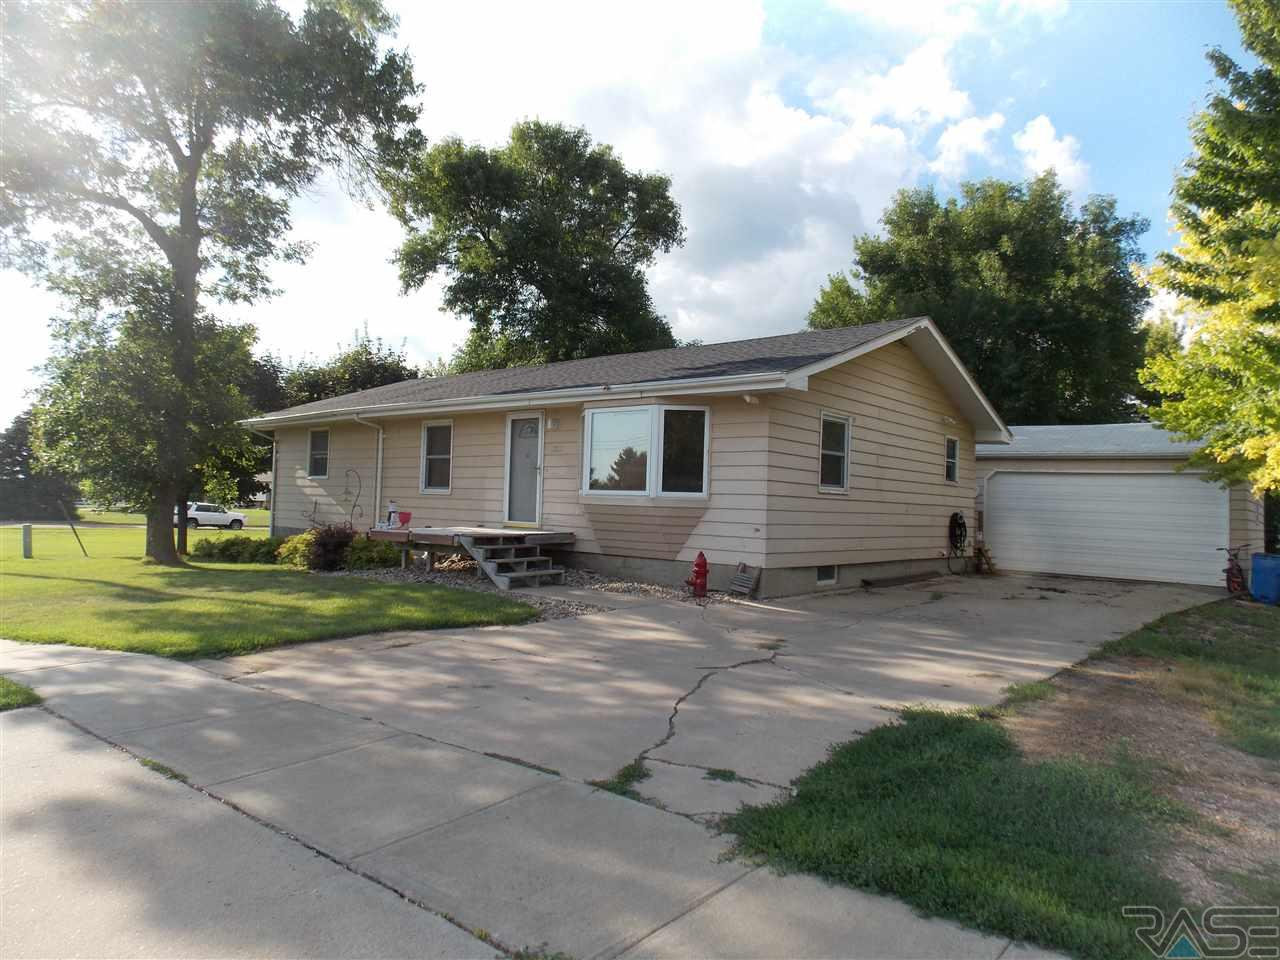 520 W 1st St, Tea, SD 57064